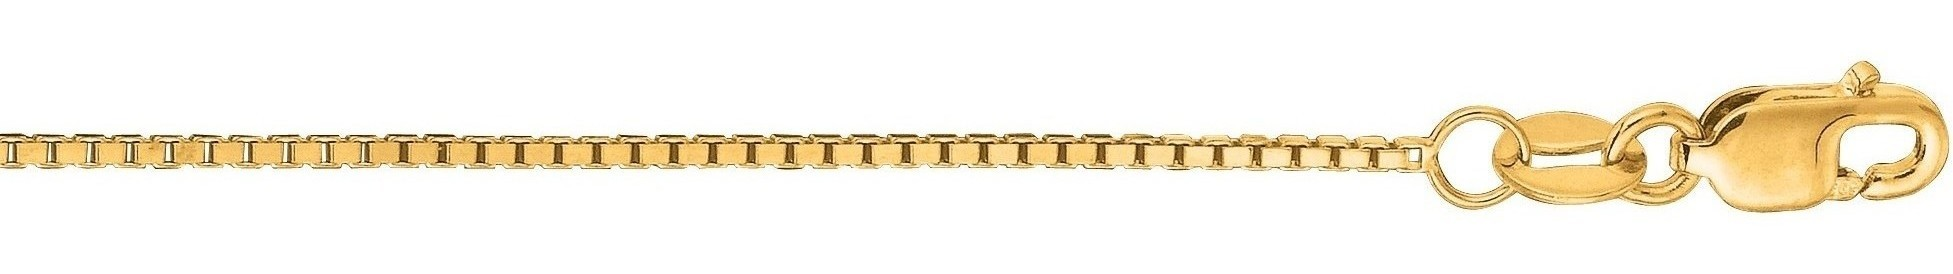 "24"" 14K Yellow Gold 1.0mm (0.04"") Polished Classic Box Chain w/ Lobster Clasp"